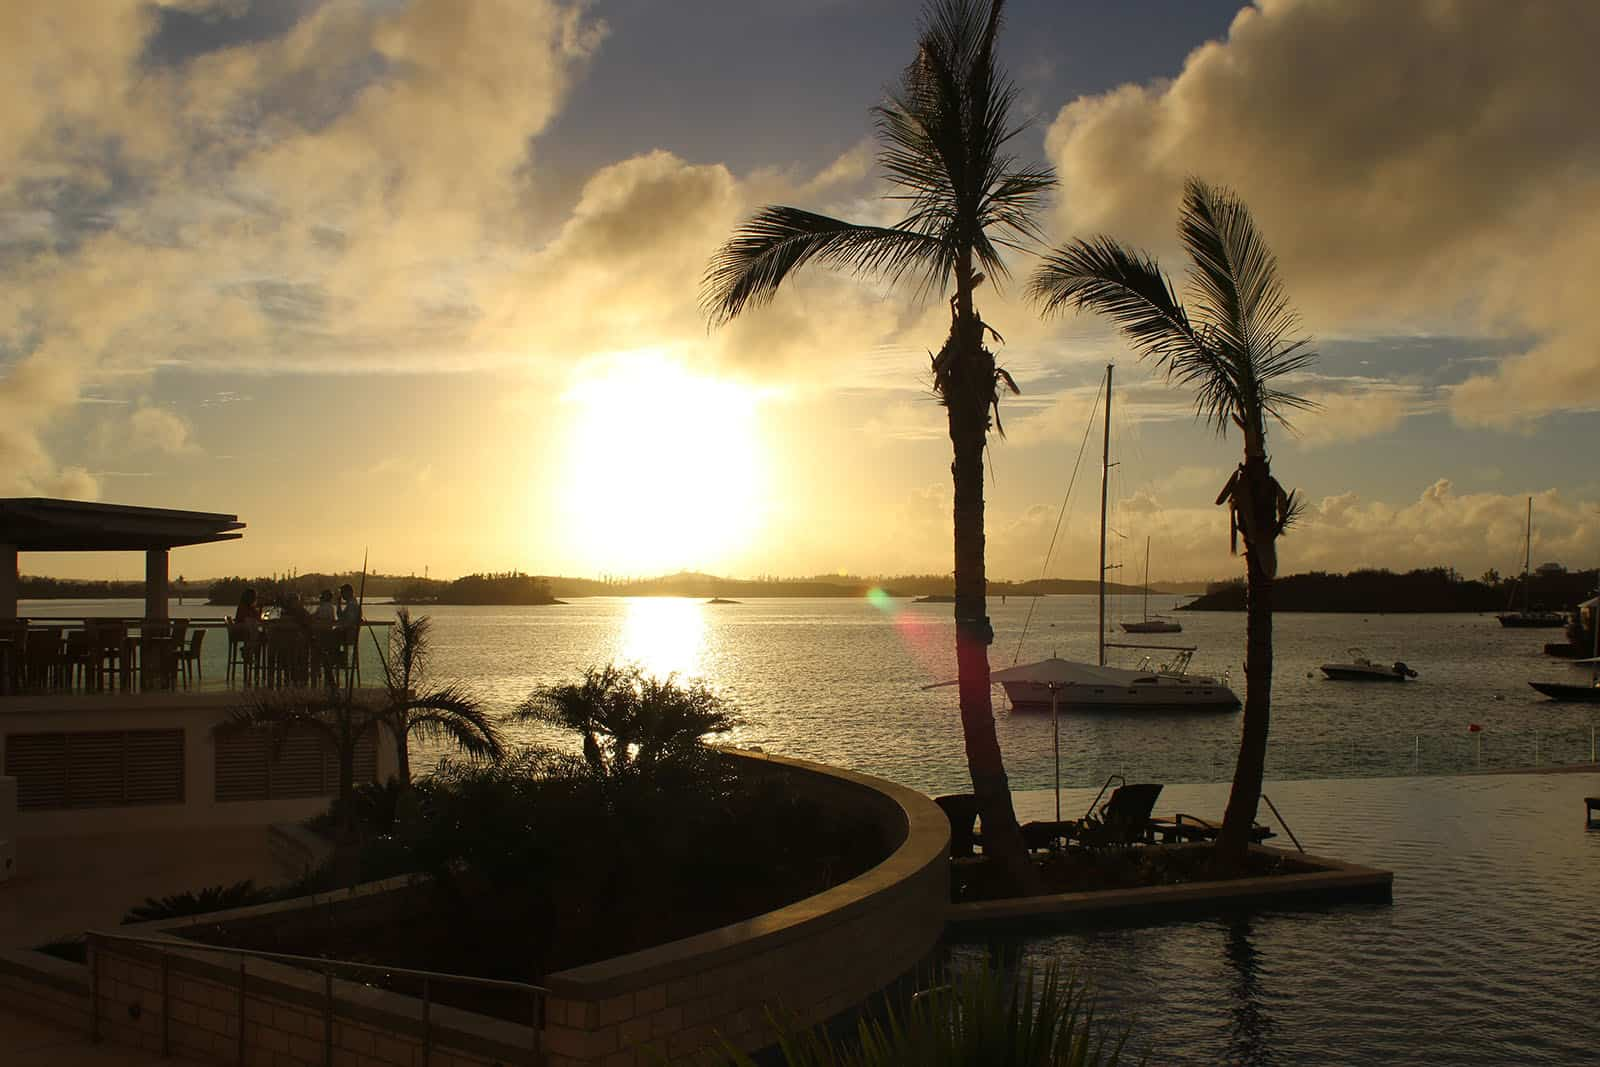 Fairmont Hamilton Princess Bermuda: Welcome to Paradise